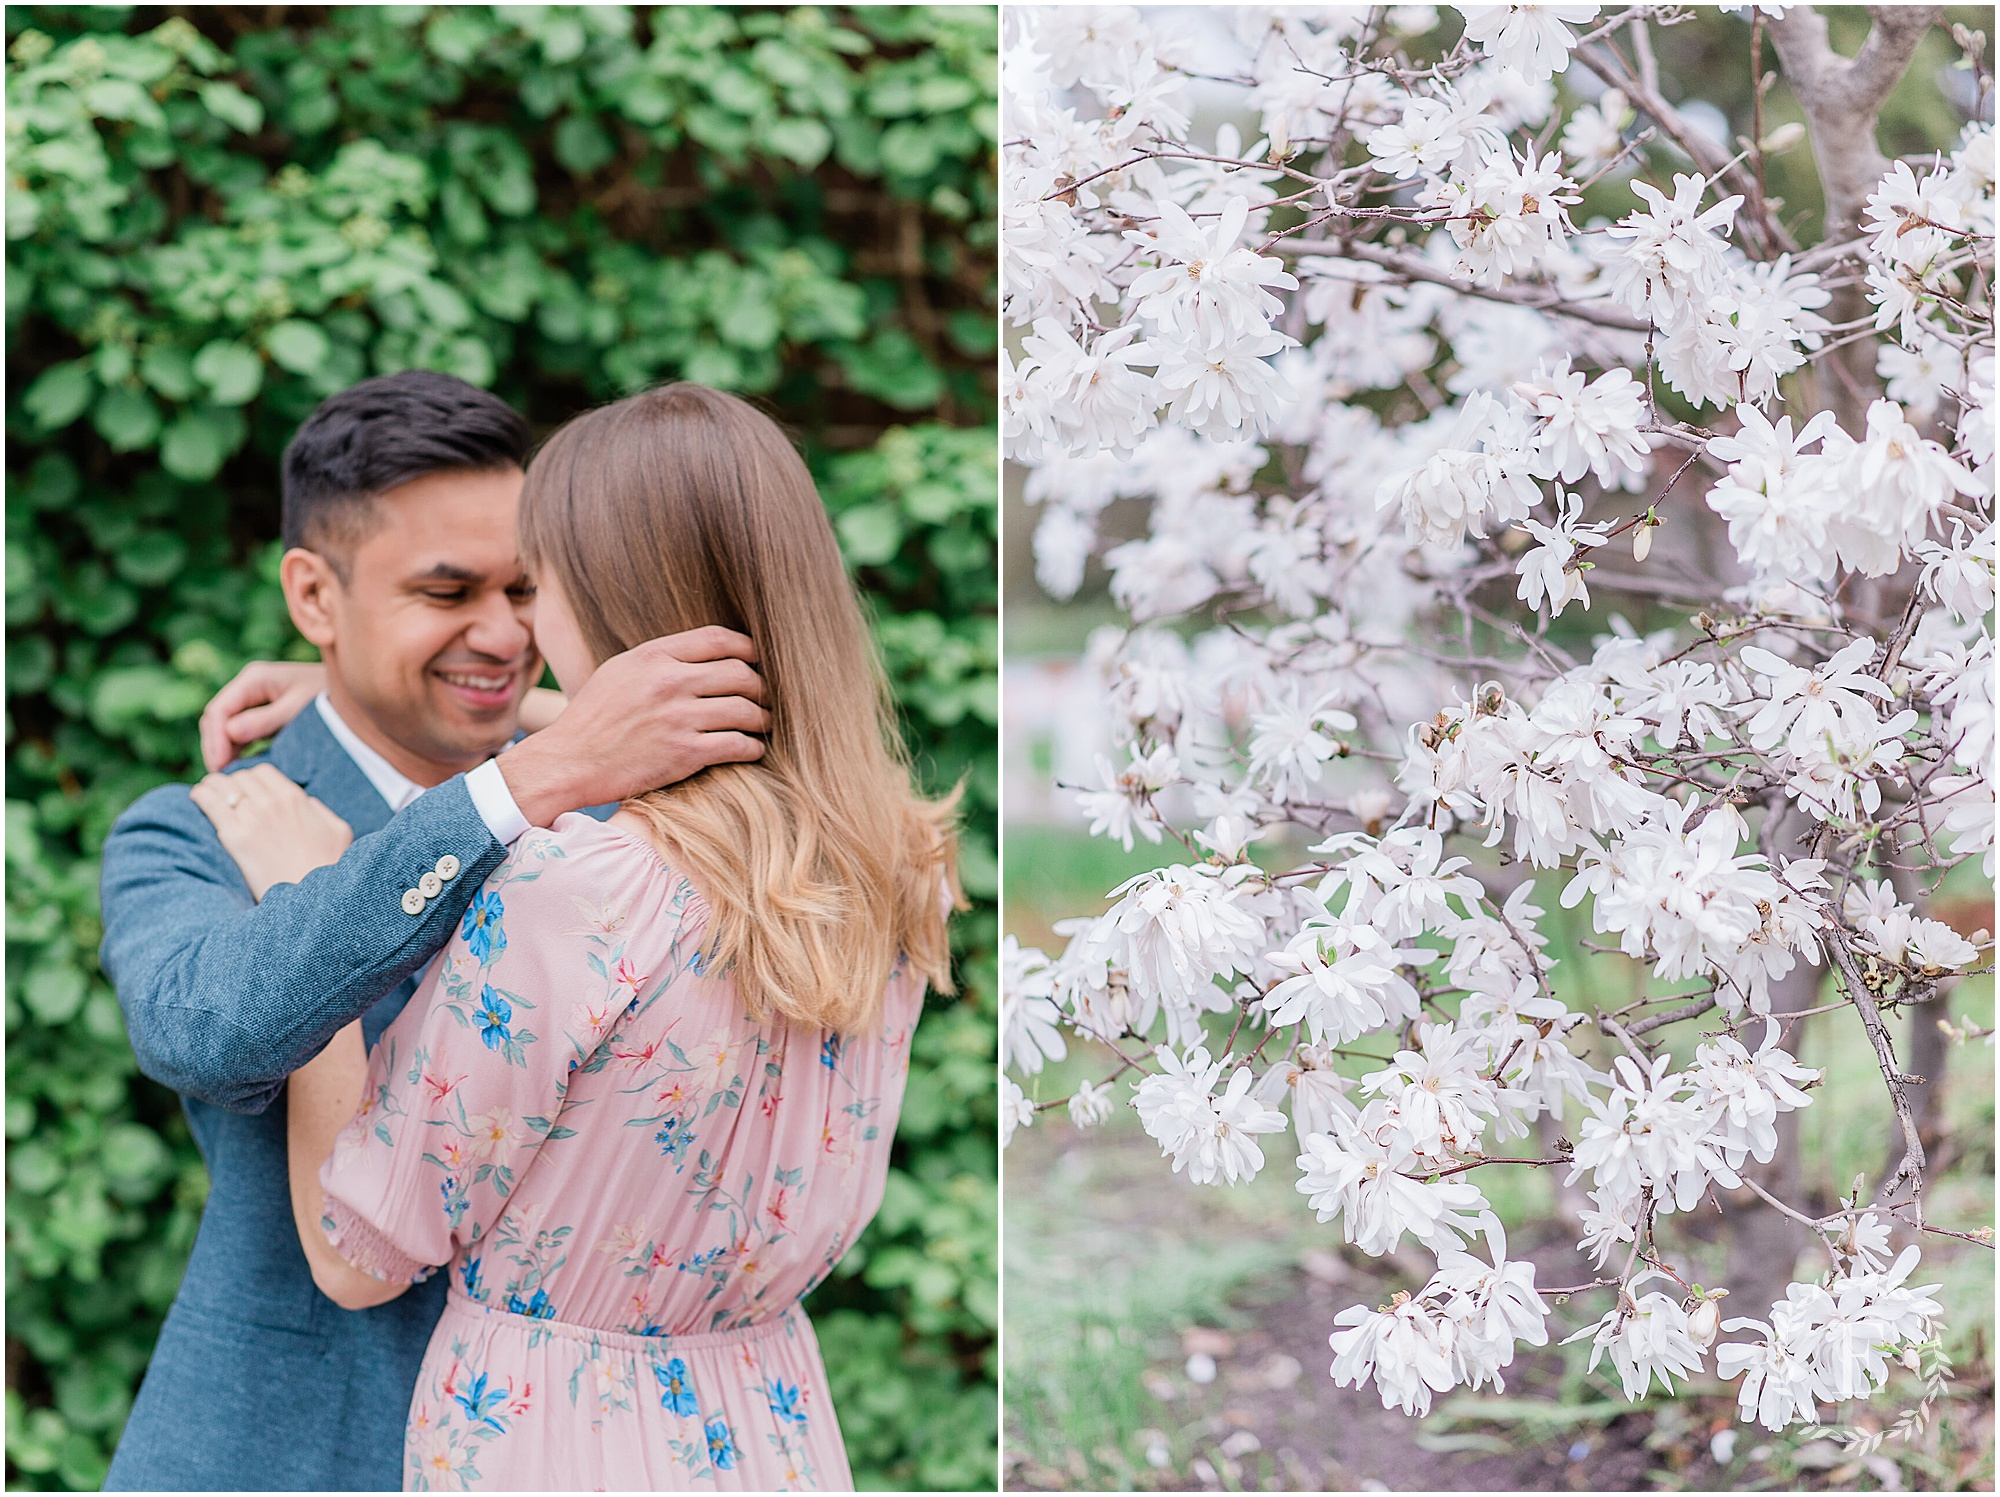 77_Cait_and_Saaqib_Engagement_at_the_Museum_of_Nature_and_Ornamental_Gardens___Photography_by_Emma.jpg